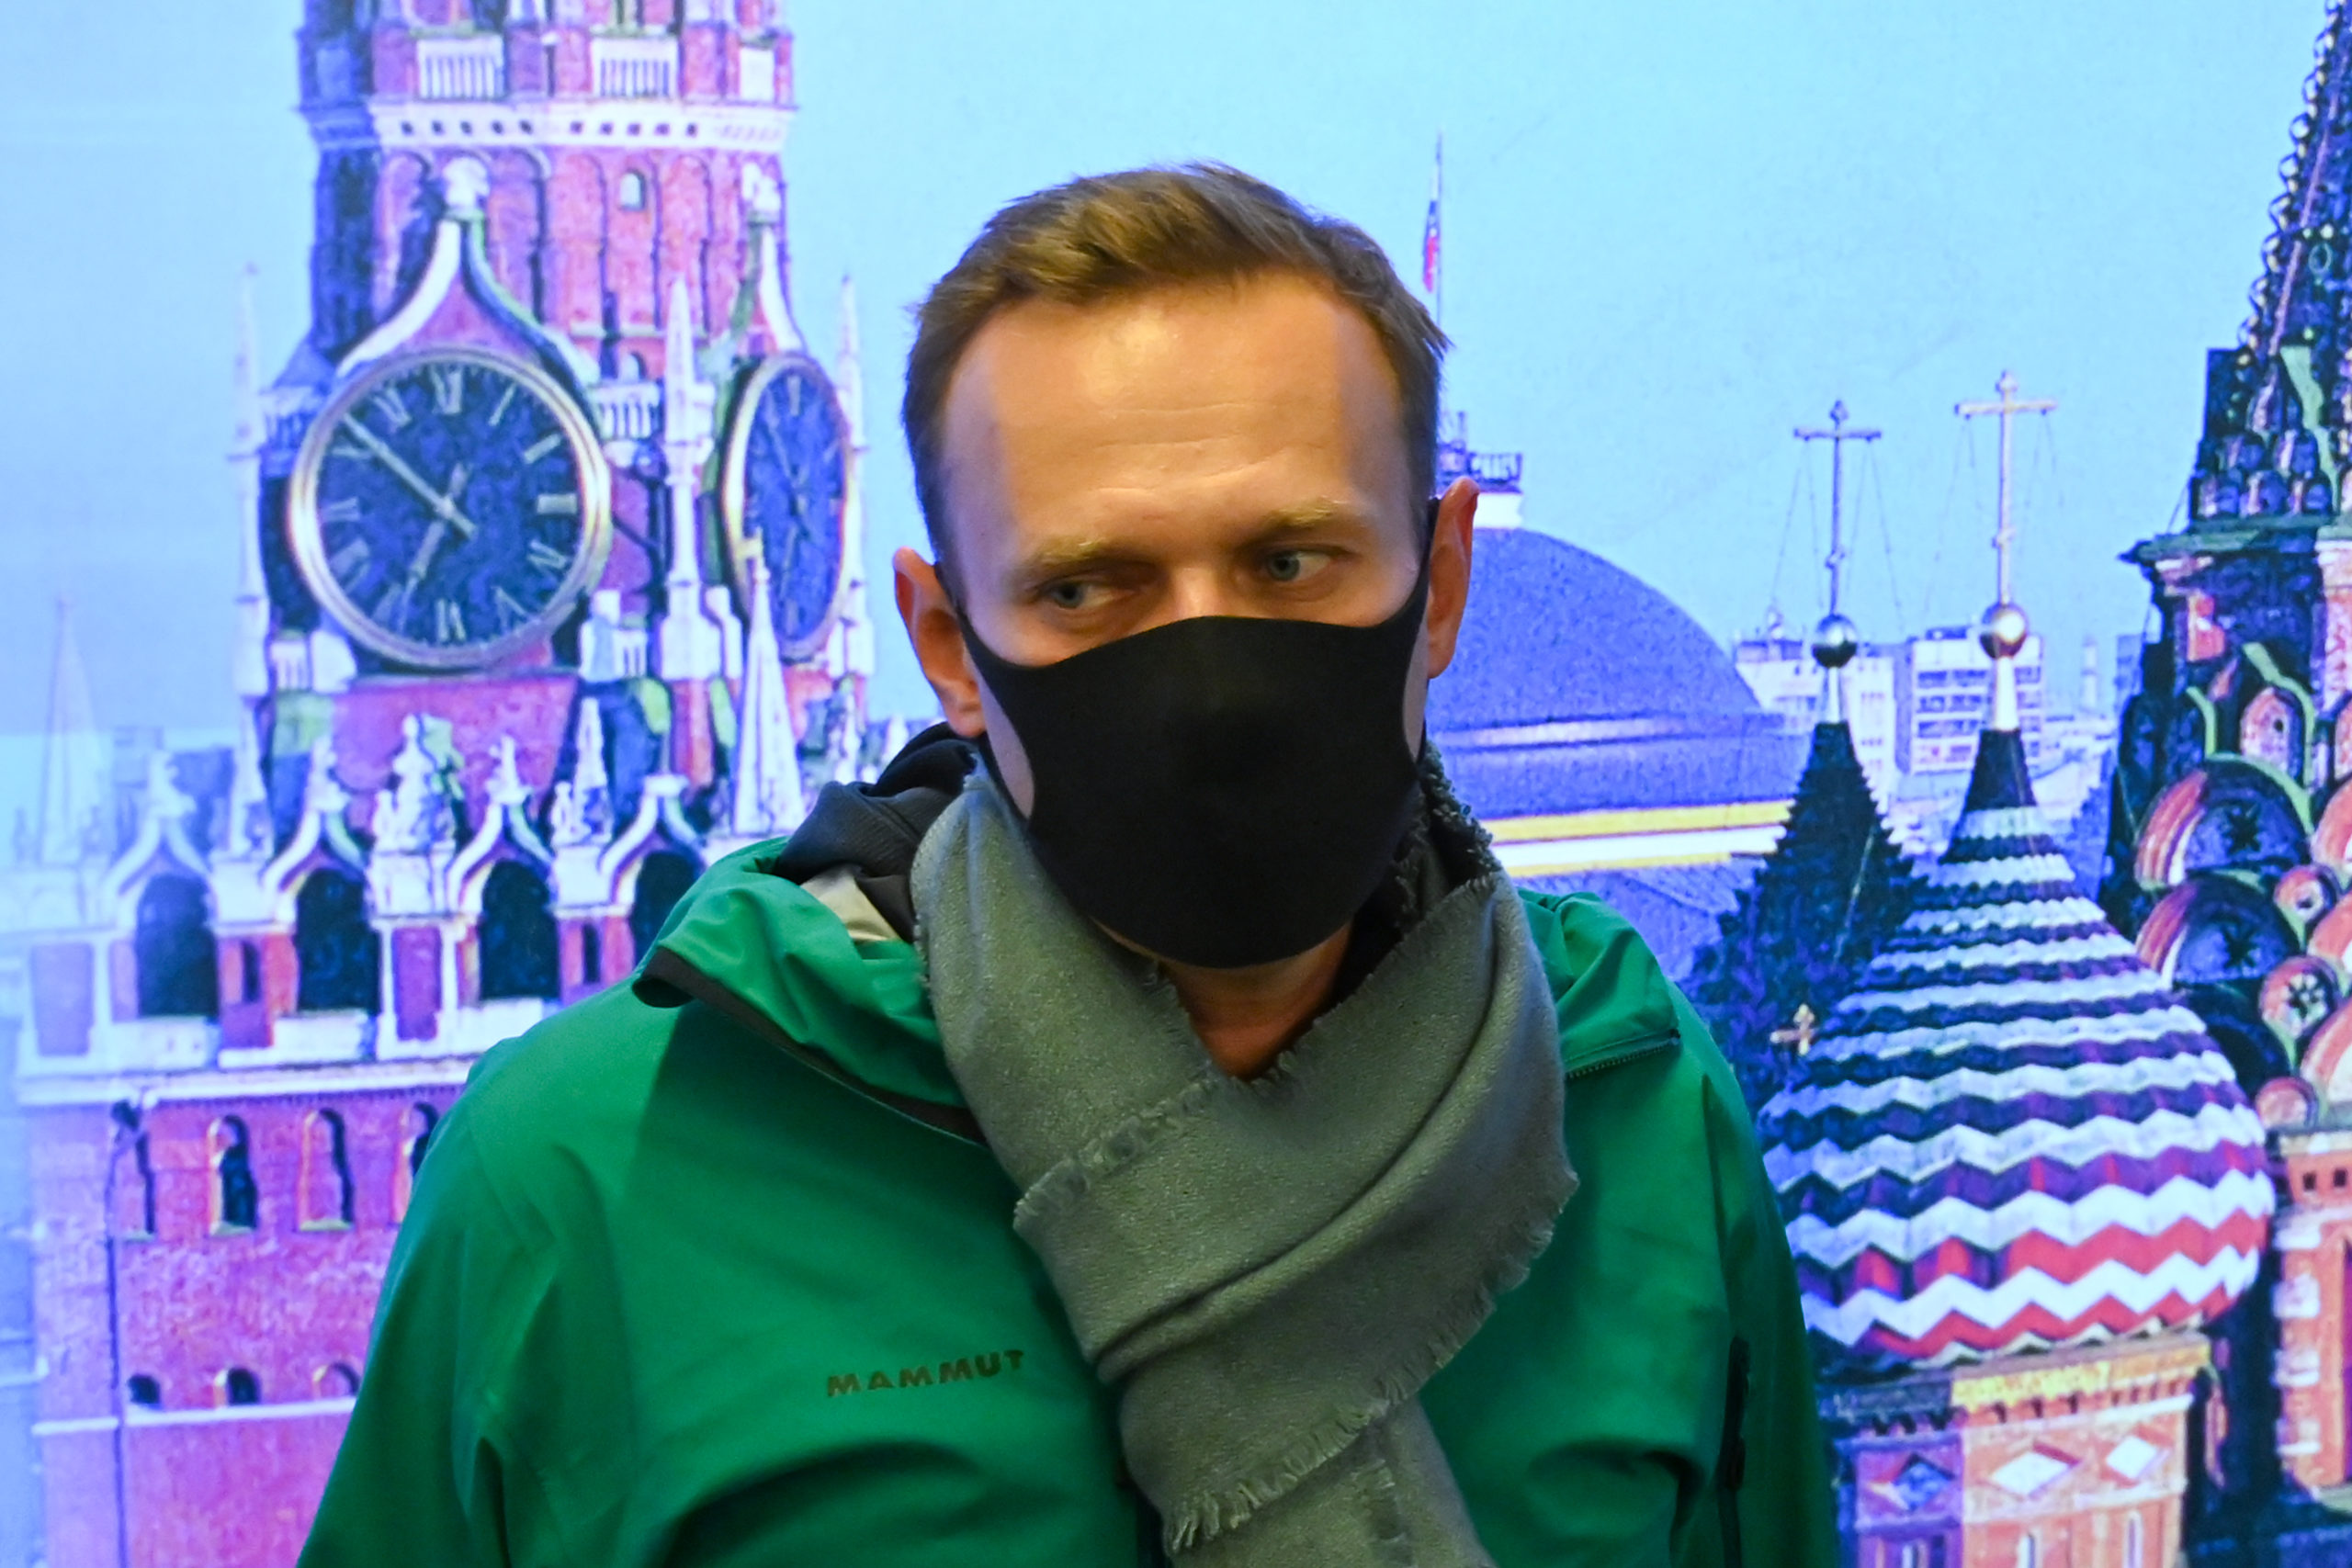 Russian opposition leader Alexei Navalny is seen at Moscow's Sheremetyevo airport upon the arrival from Berlin on January 17, 2021. - Russian police detained Kremlin critic Alexei Navalny at a Moscow airport shortly after he landed on a flight from Berlin, an AFP journalist at the scene said. (Photo by KIRILL KUDRYAVTSEV/AFP via Getty Images)